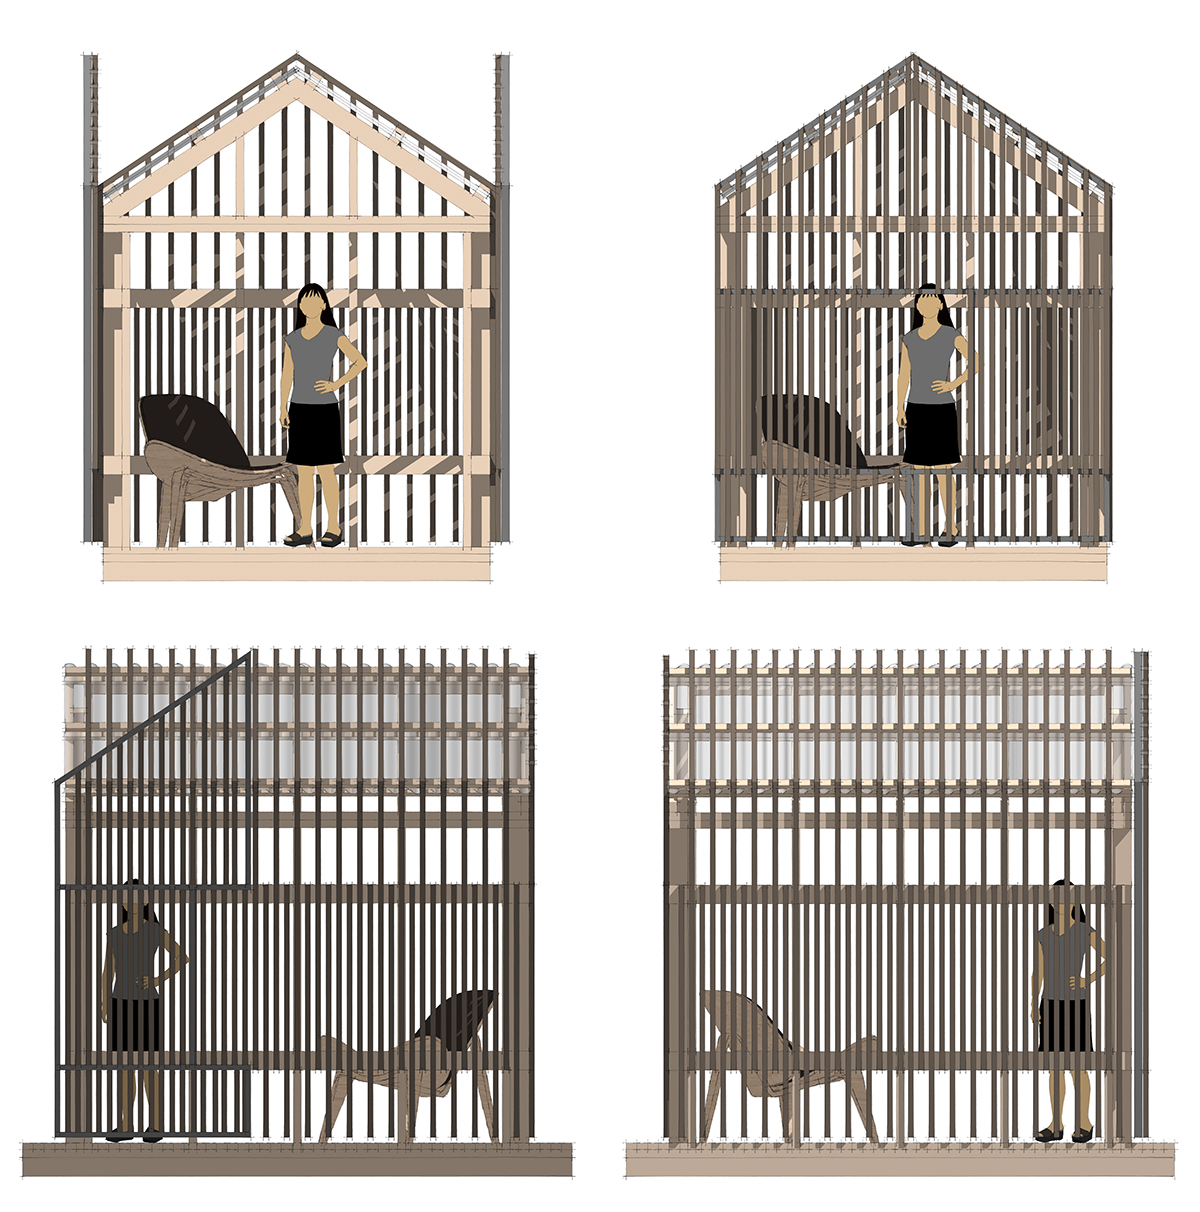 Grasshopper playhouse - transparency elevations